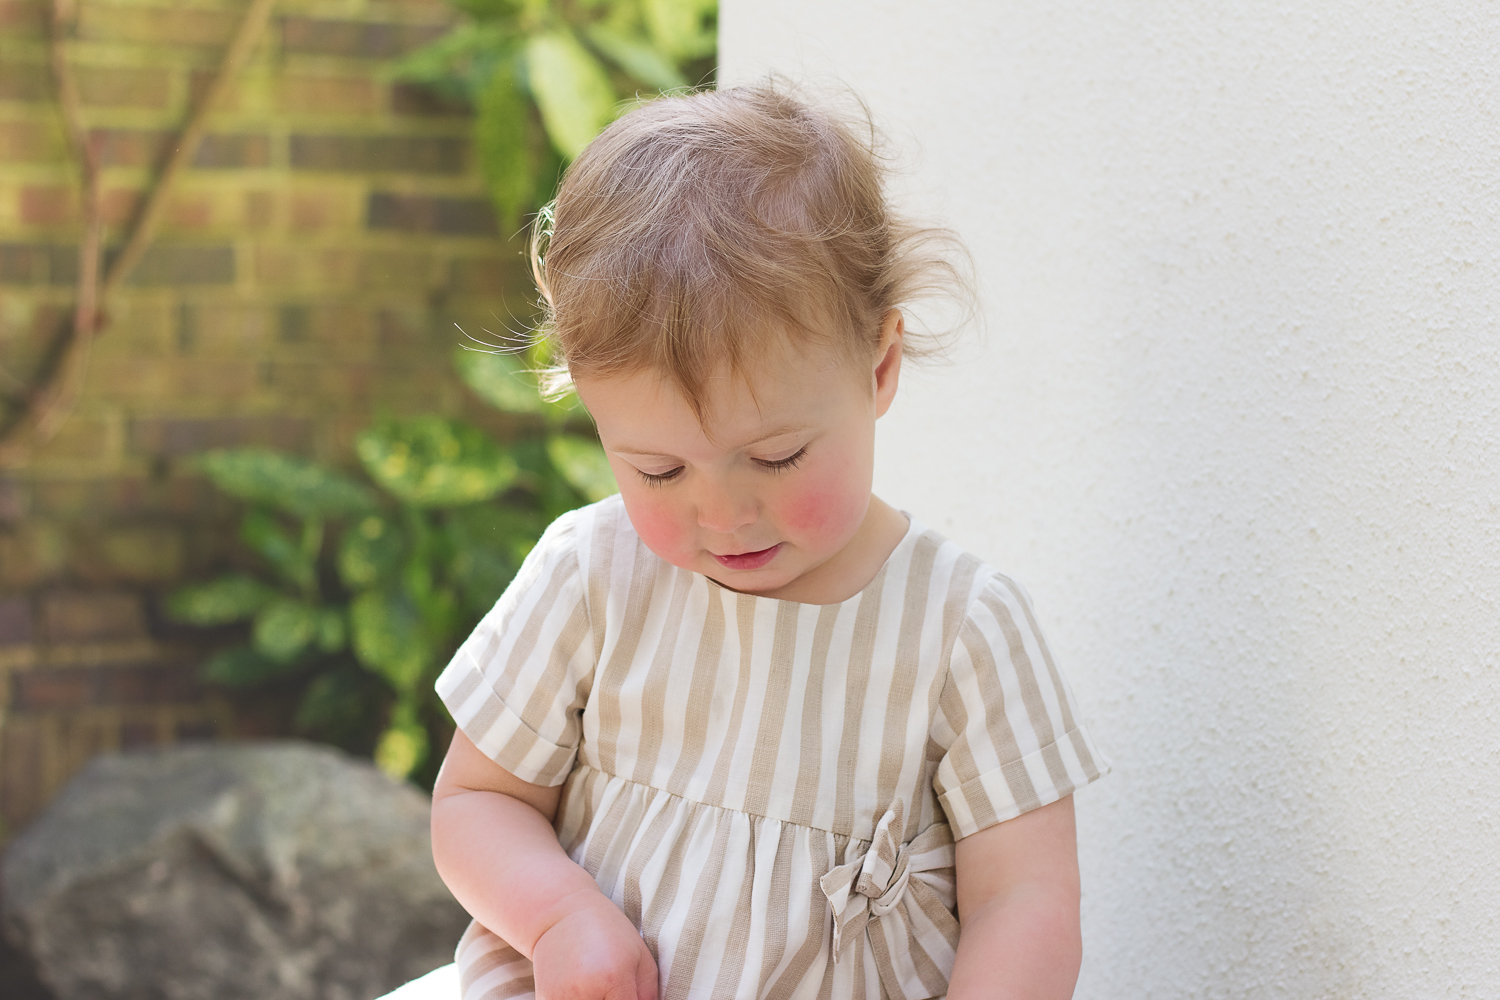 The birthday girl looks down in a pretty cream and white striped dress